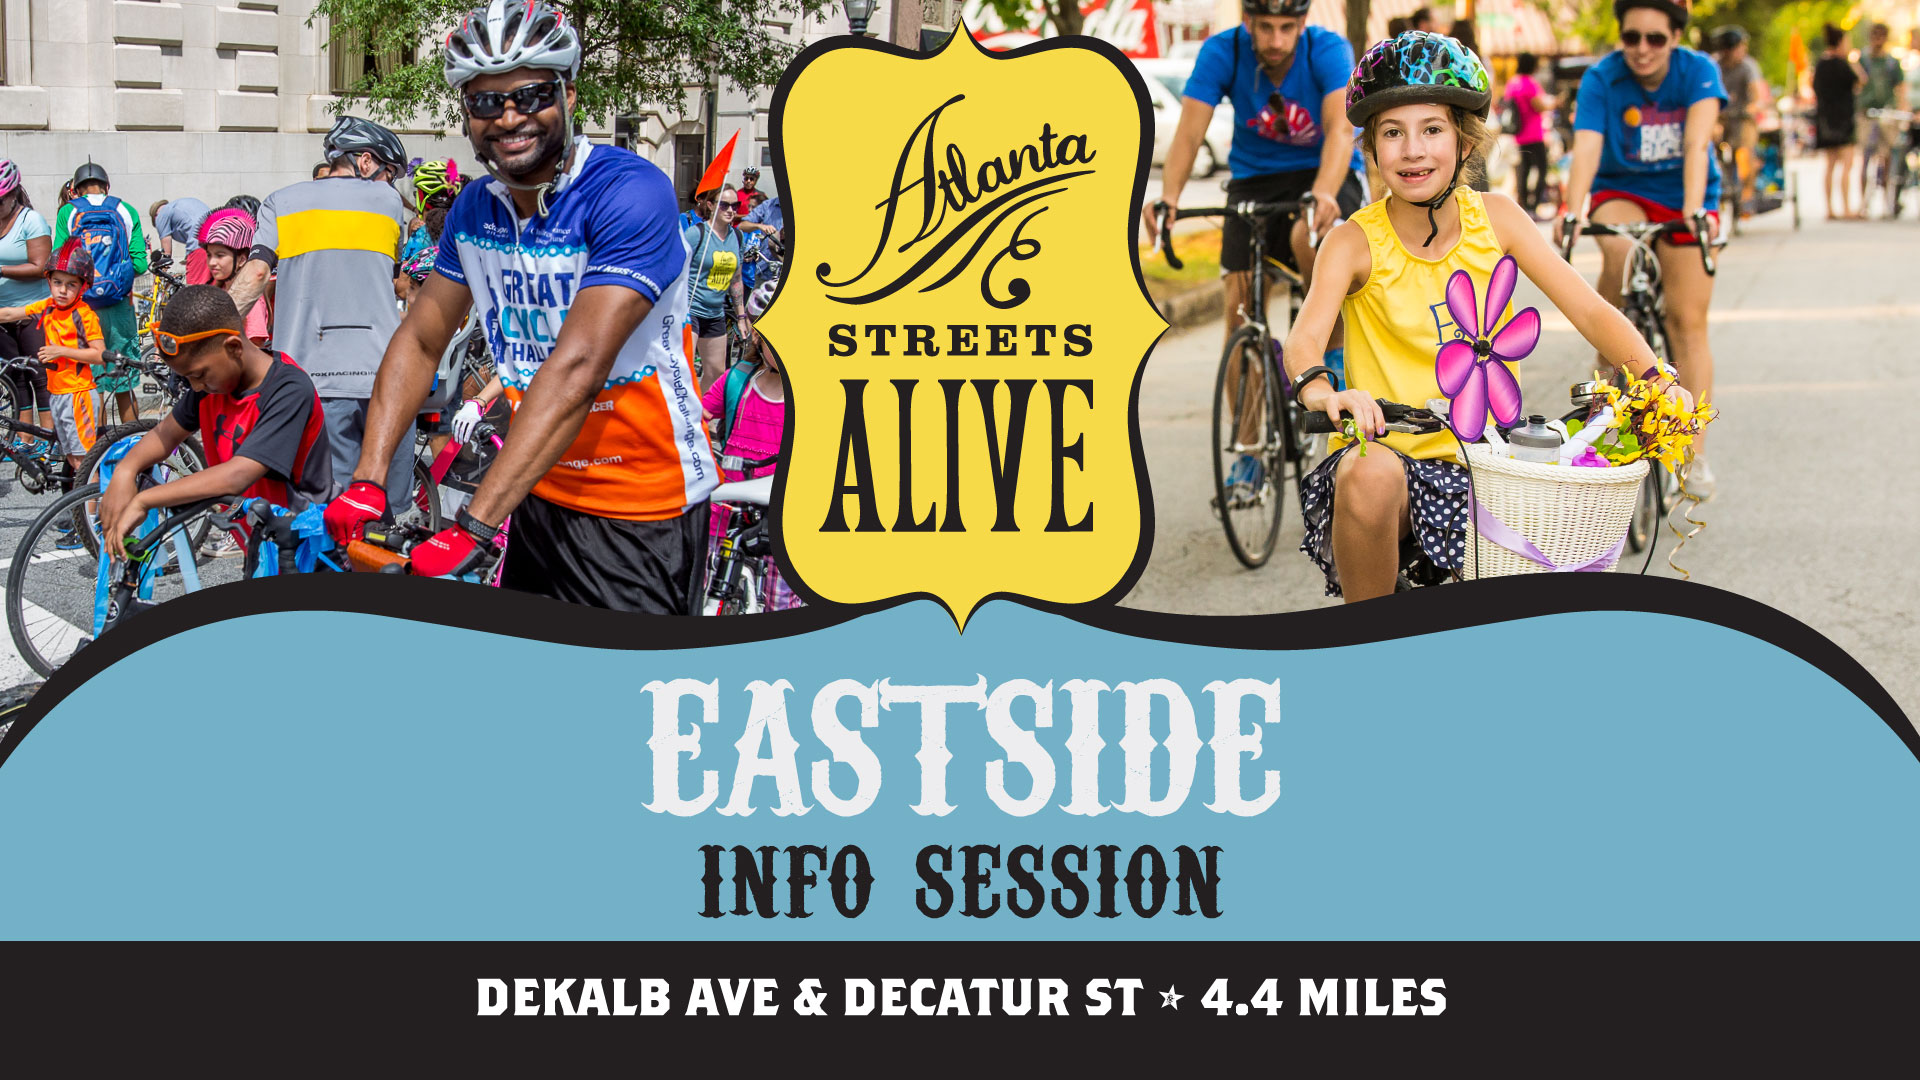 Info Session: Atlanta Streets Alive - Eastside